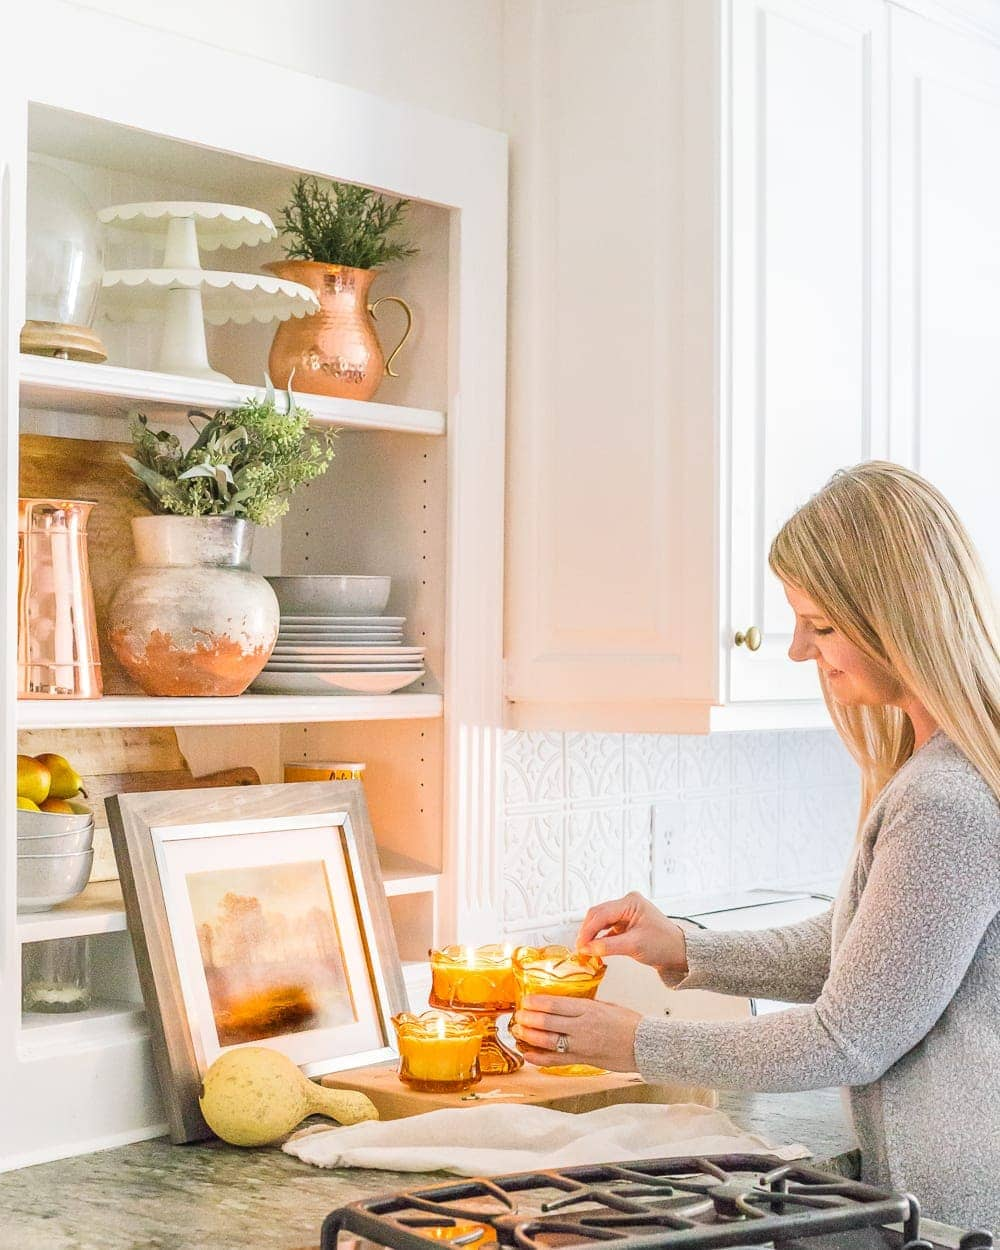 kitchen shelves and amber glass candles